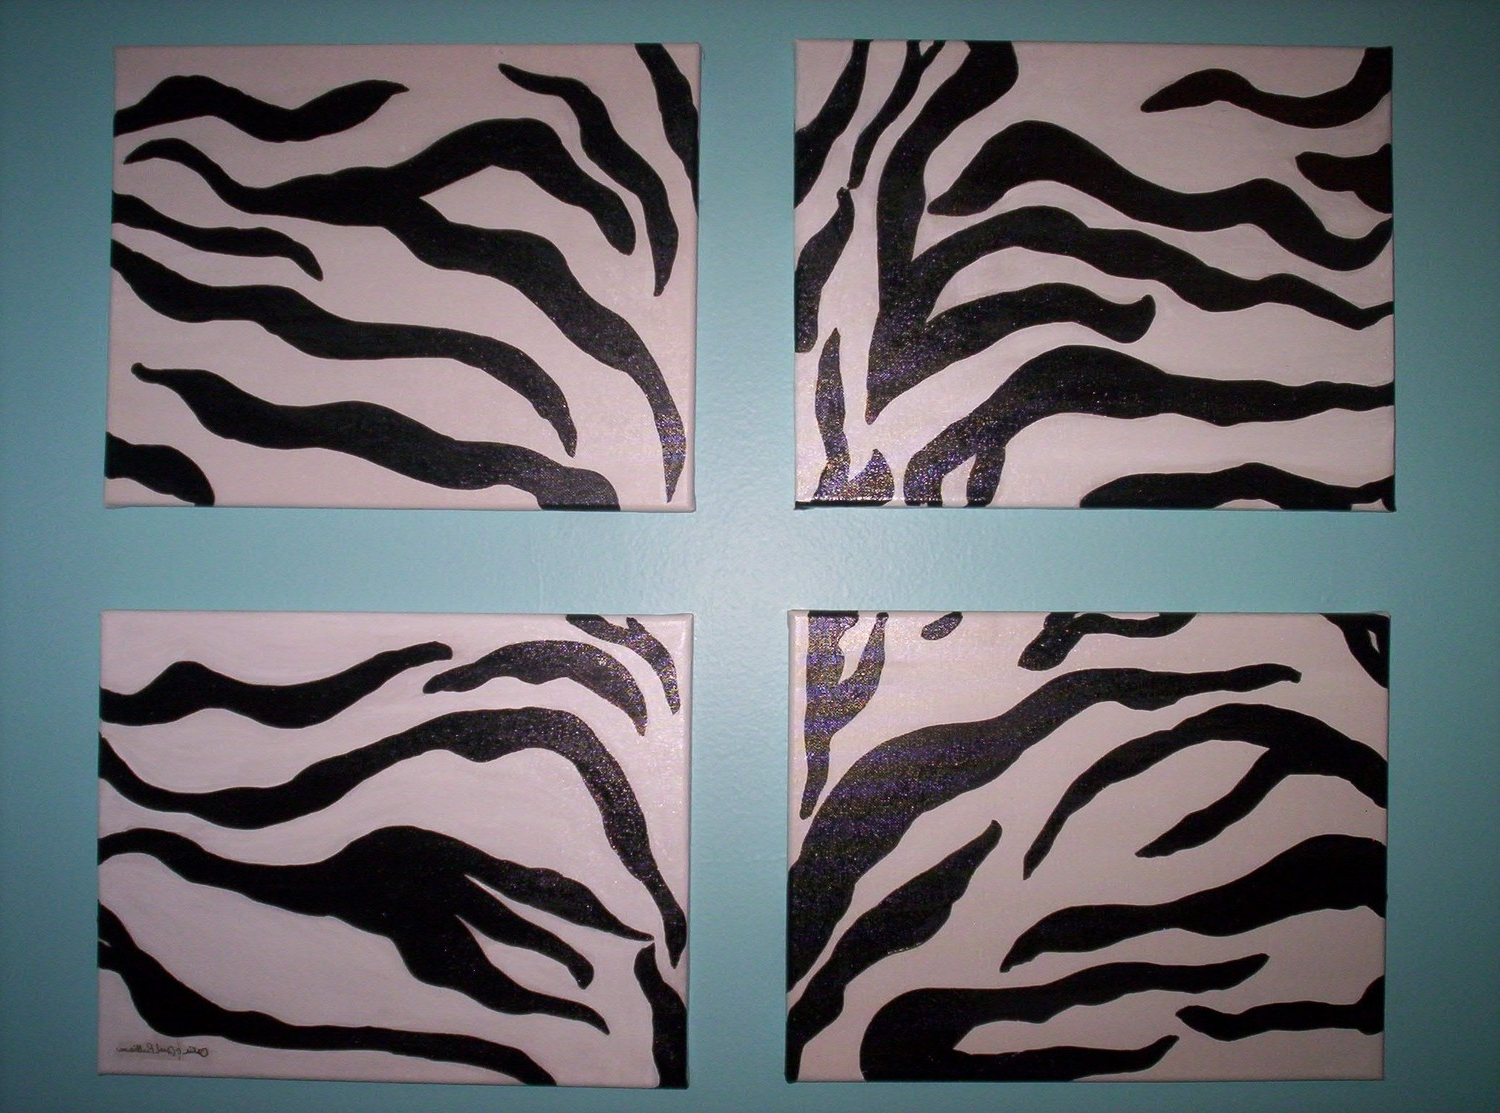 Zebra Canvas Wall Art Intended For Most Recent Zebra Print Wall Art – Prix Dalle Beton (View 15 of 20)